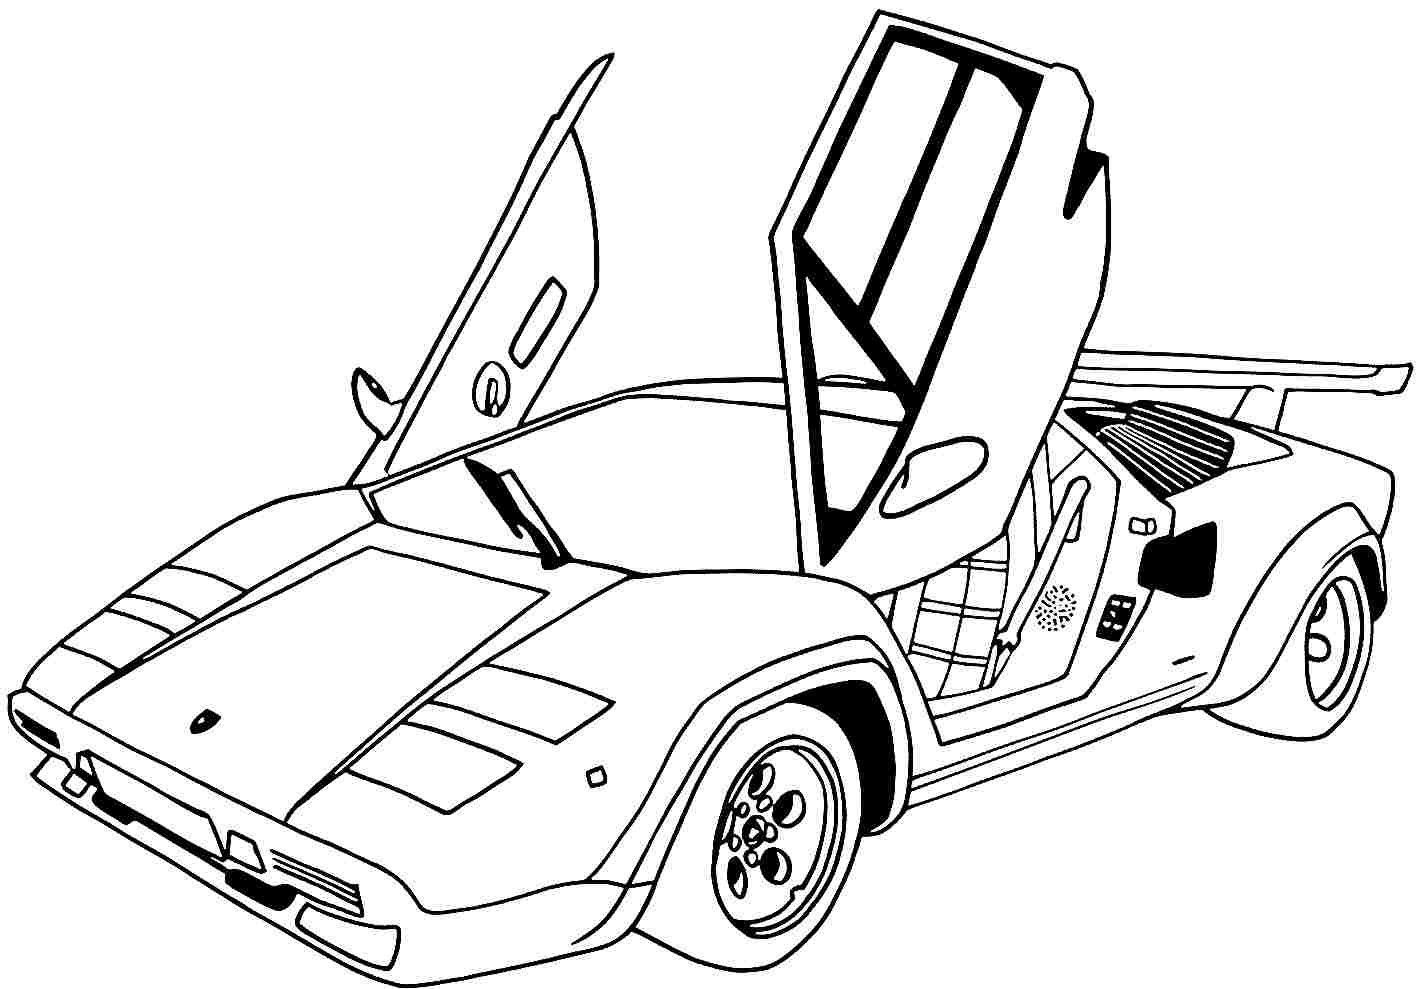 Printable Coloring Pages Of Sports Cars Coloring Home Race Car Coloring Pages Sports Coloring Pages Cars Coloring Pages